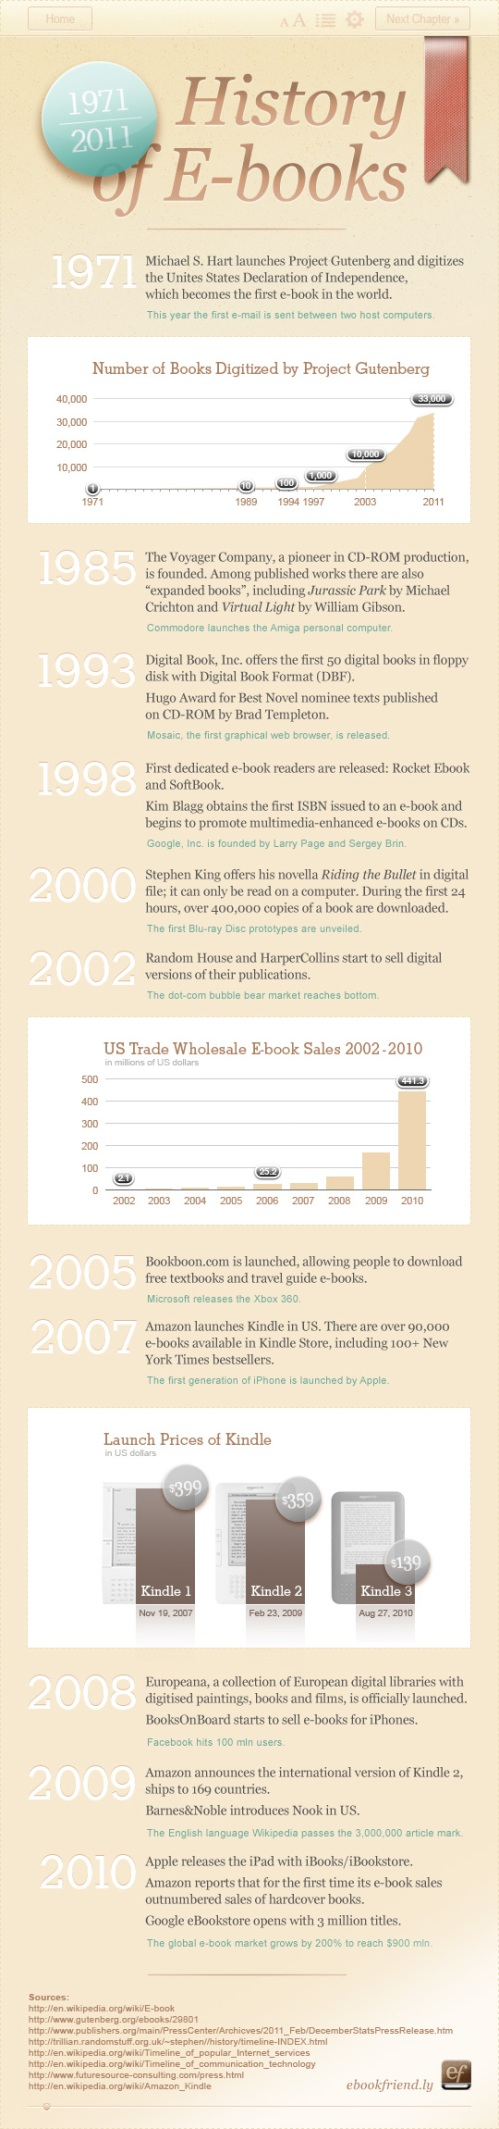 Infographic showing the history of eBooks since 1971